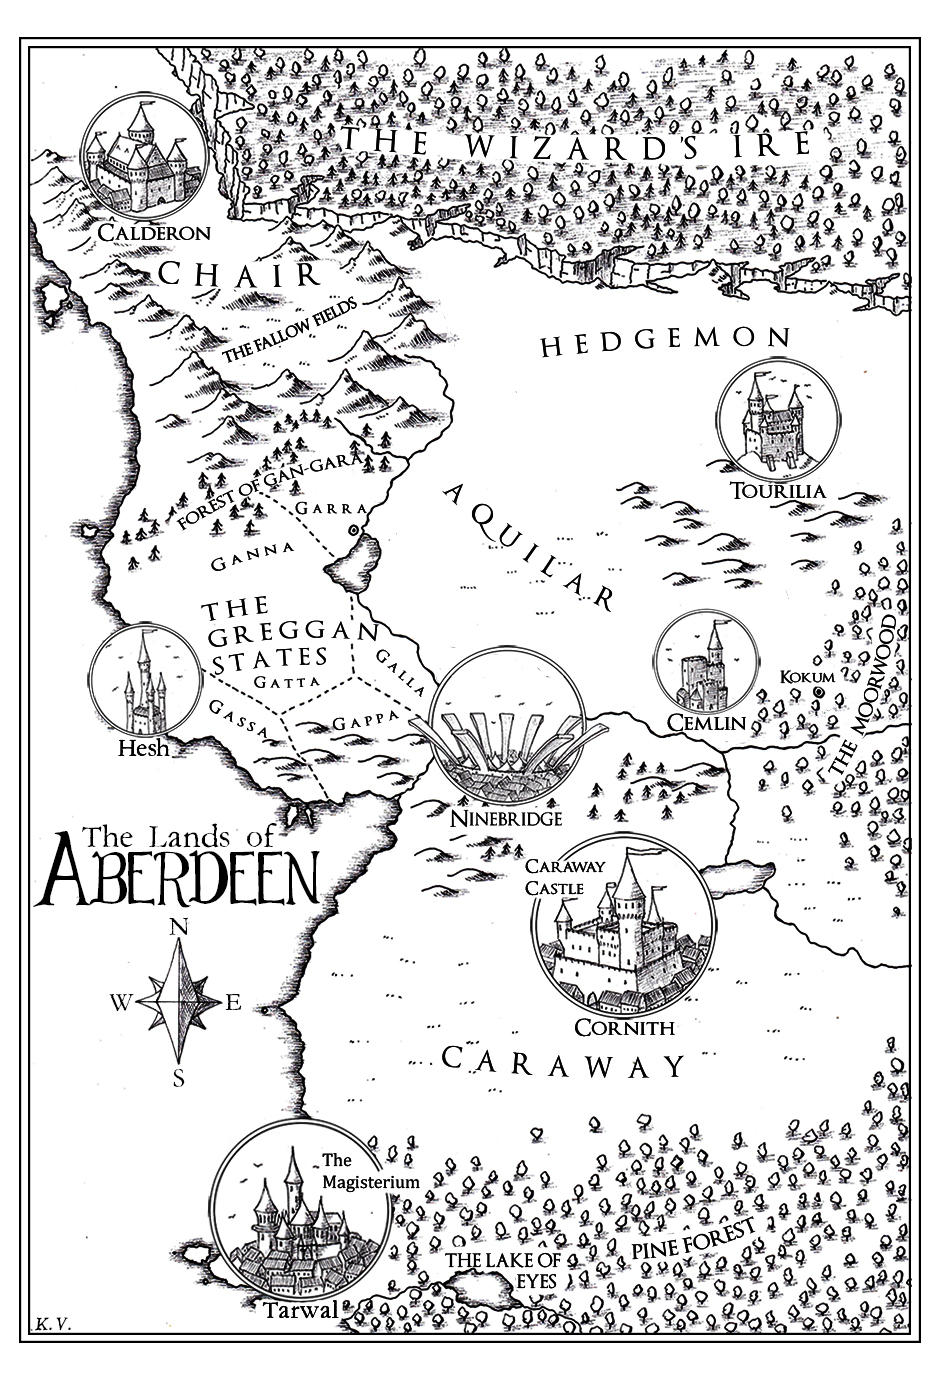 Aberdeen - fantasy map commission 2015 by Traditionalmaps